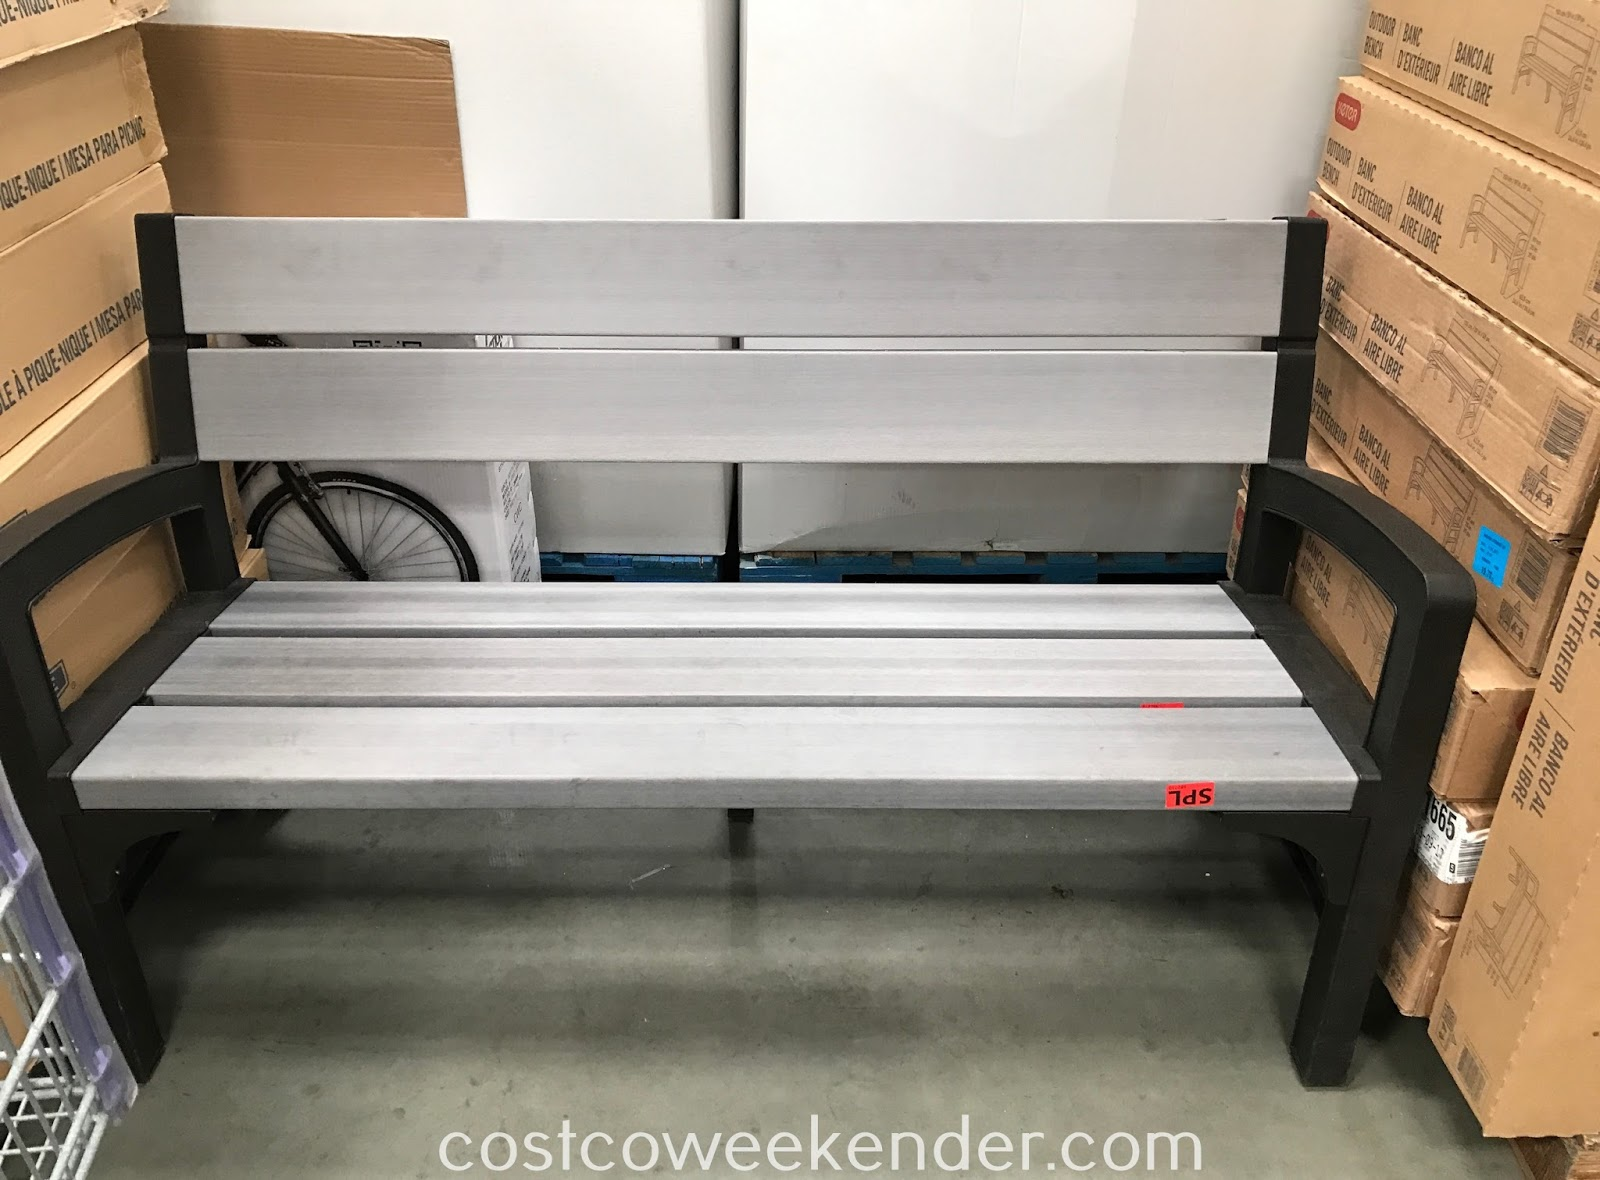 Get more outdoor seating with the Keter Outdoor Bench